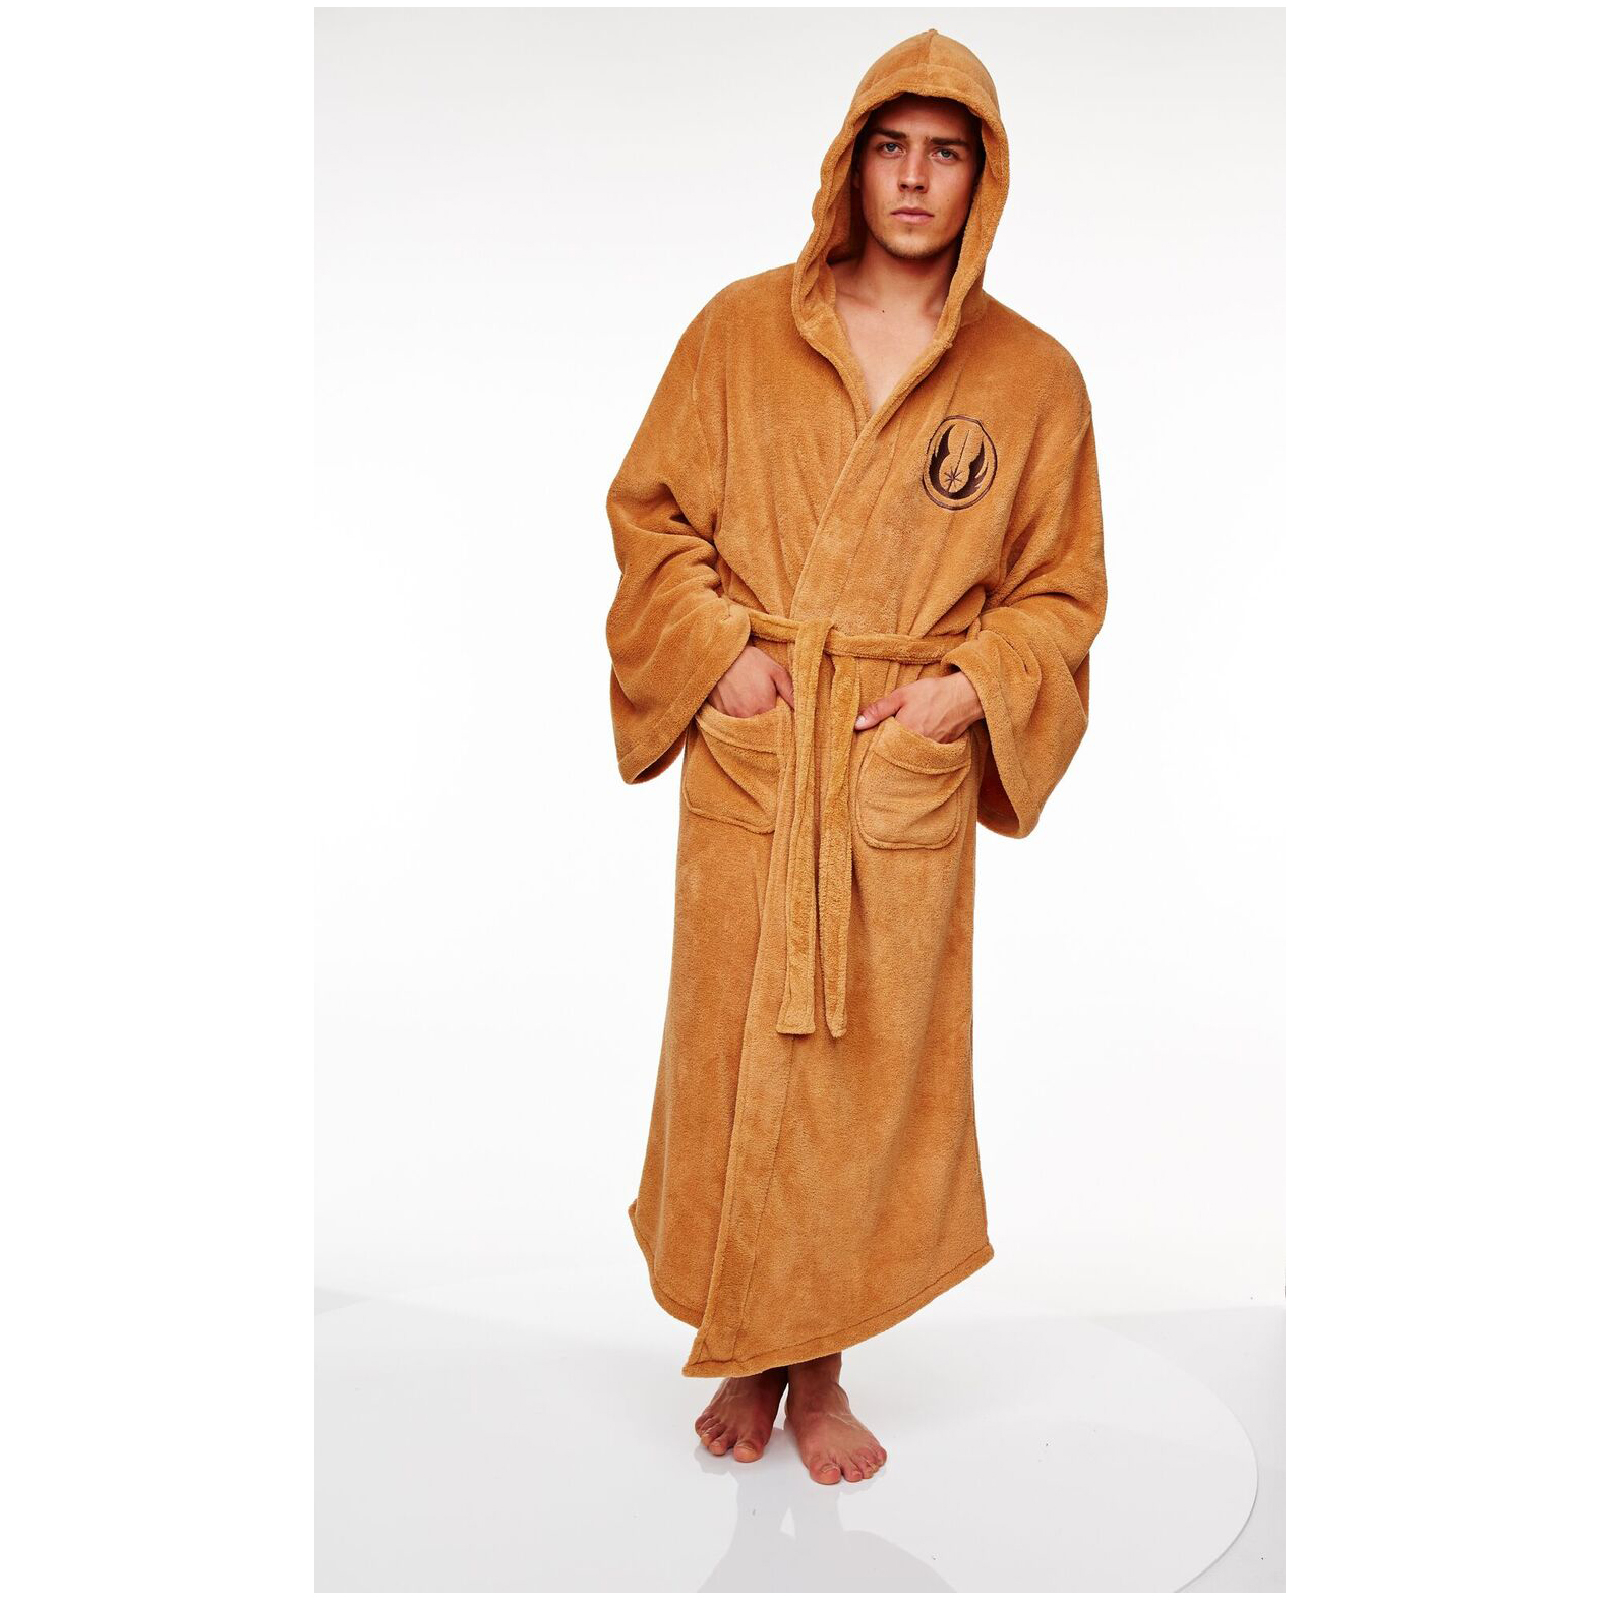 44632f563d0 Star Wars Jedi Adult Fleece Bathrobe (One Size) | IWOOT